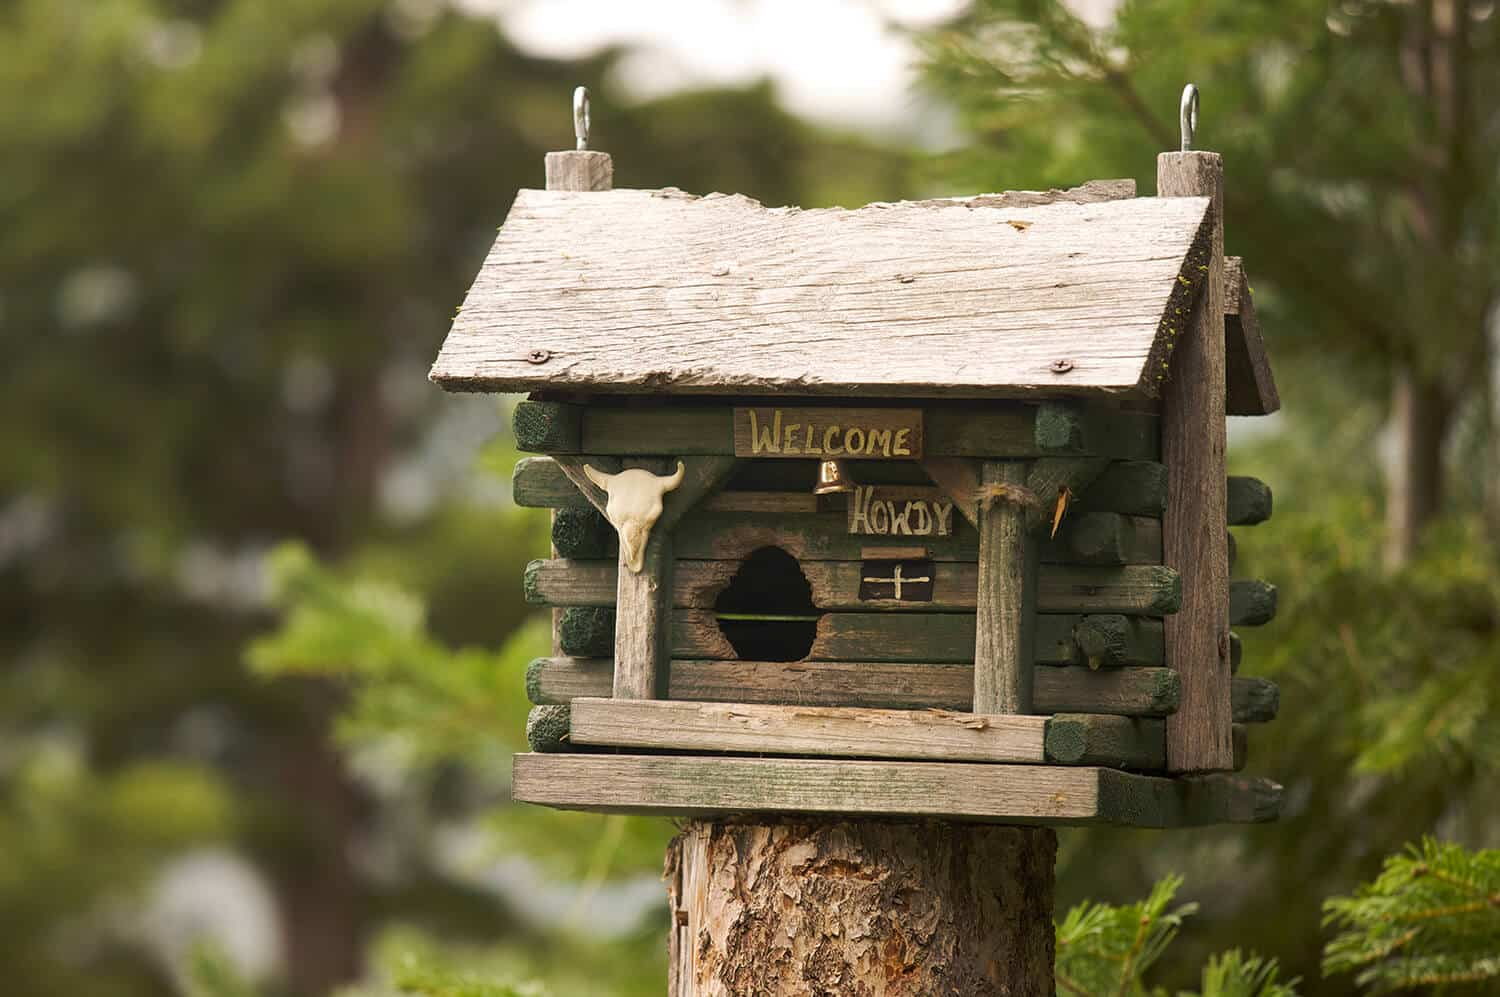 Building and selling wooden bird houses online